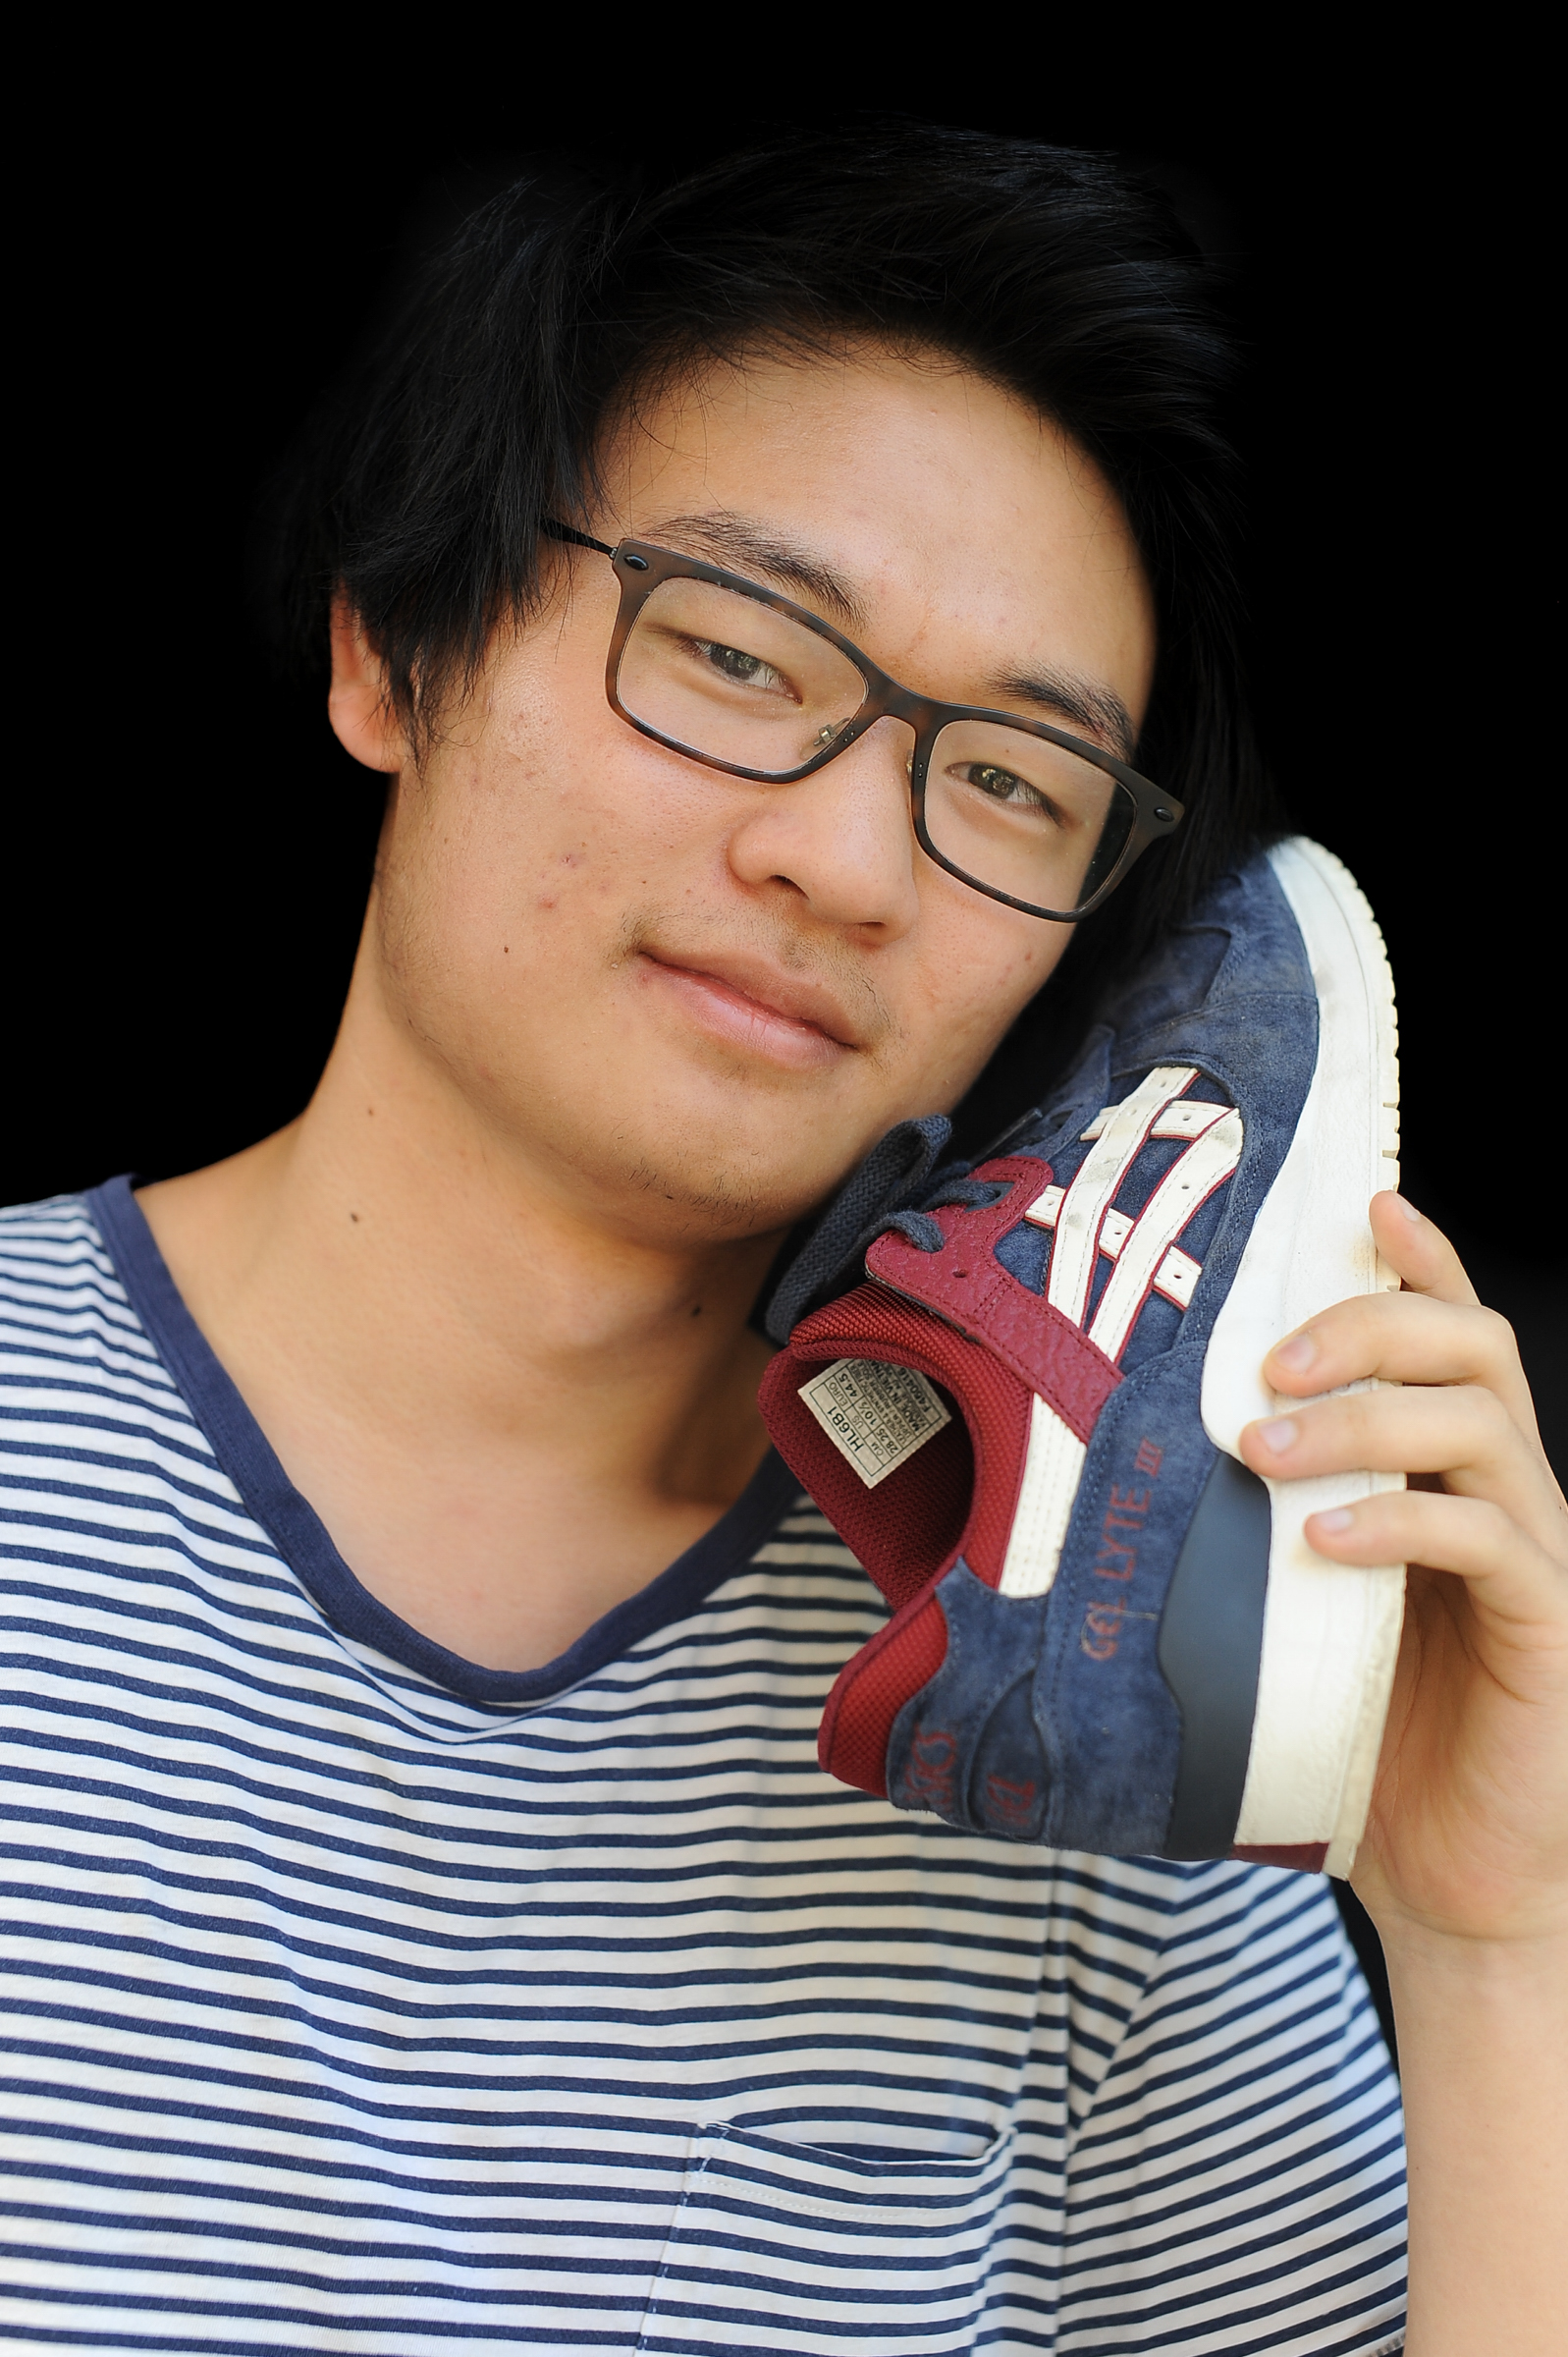 Name: Eliot Huang